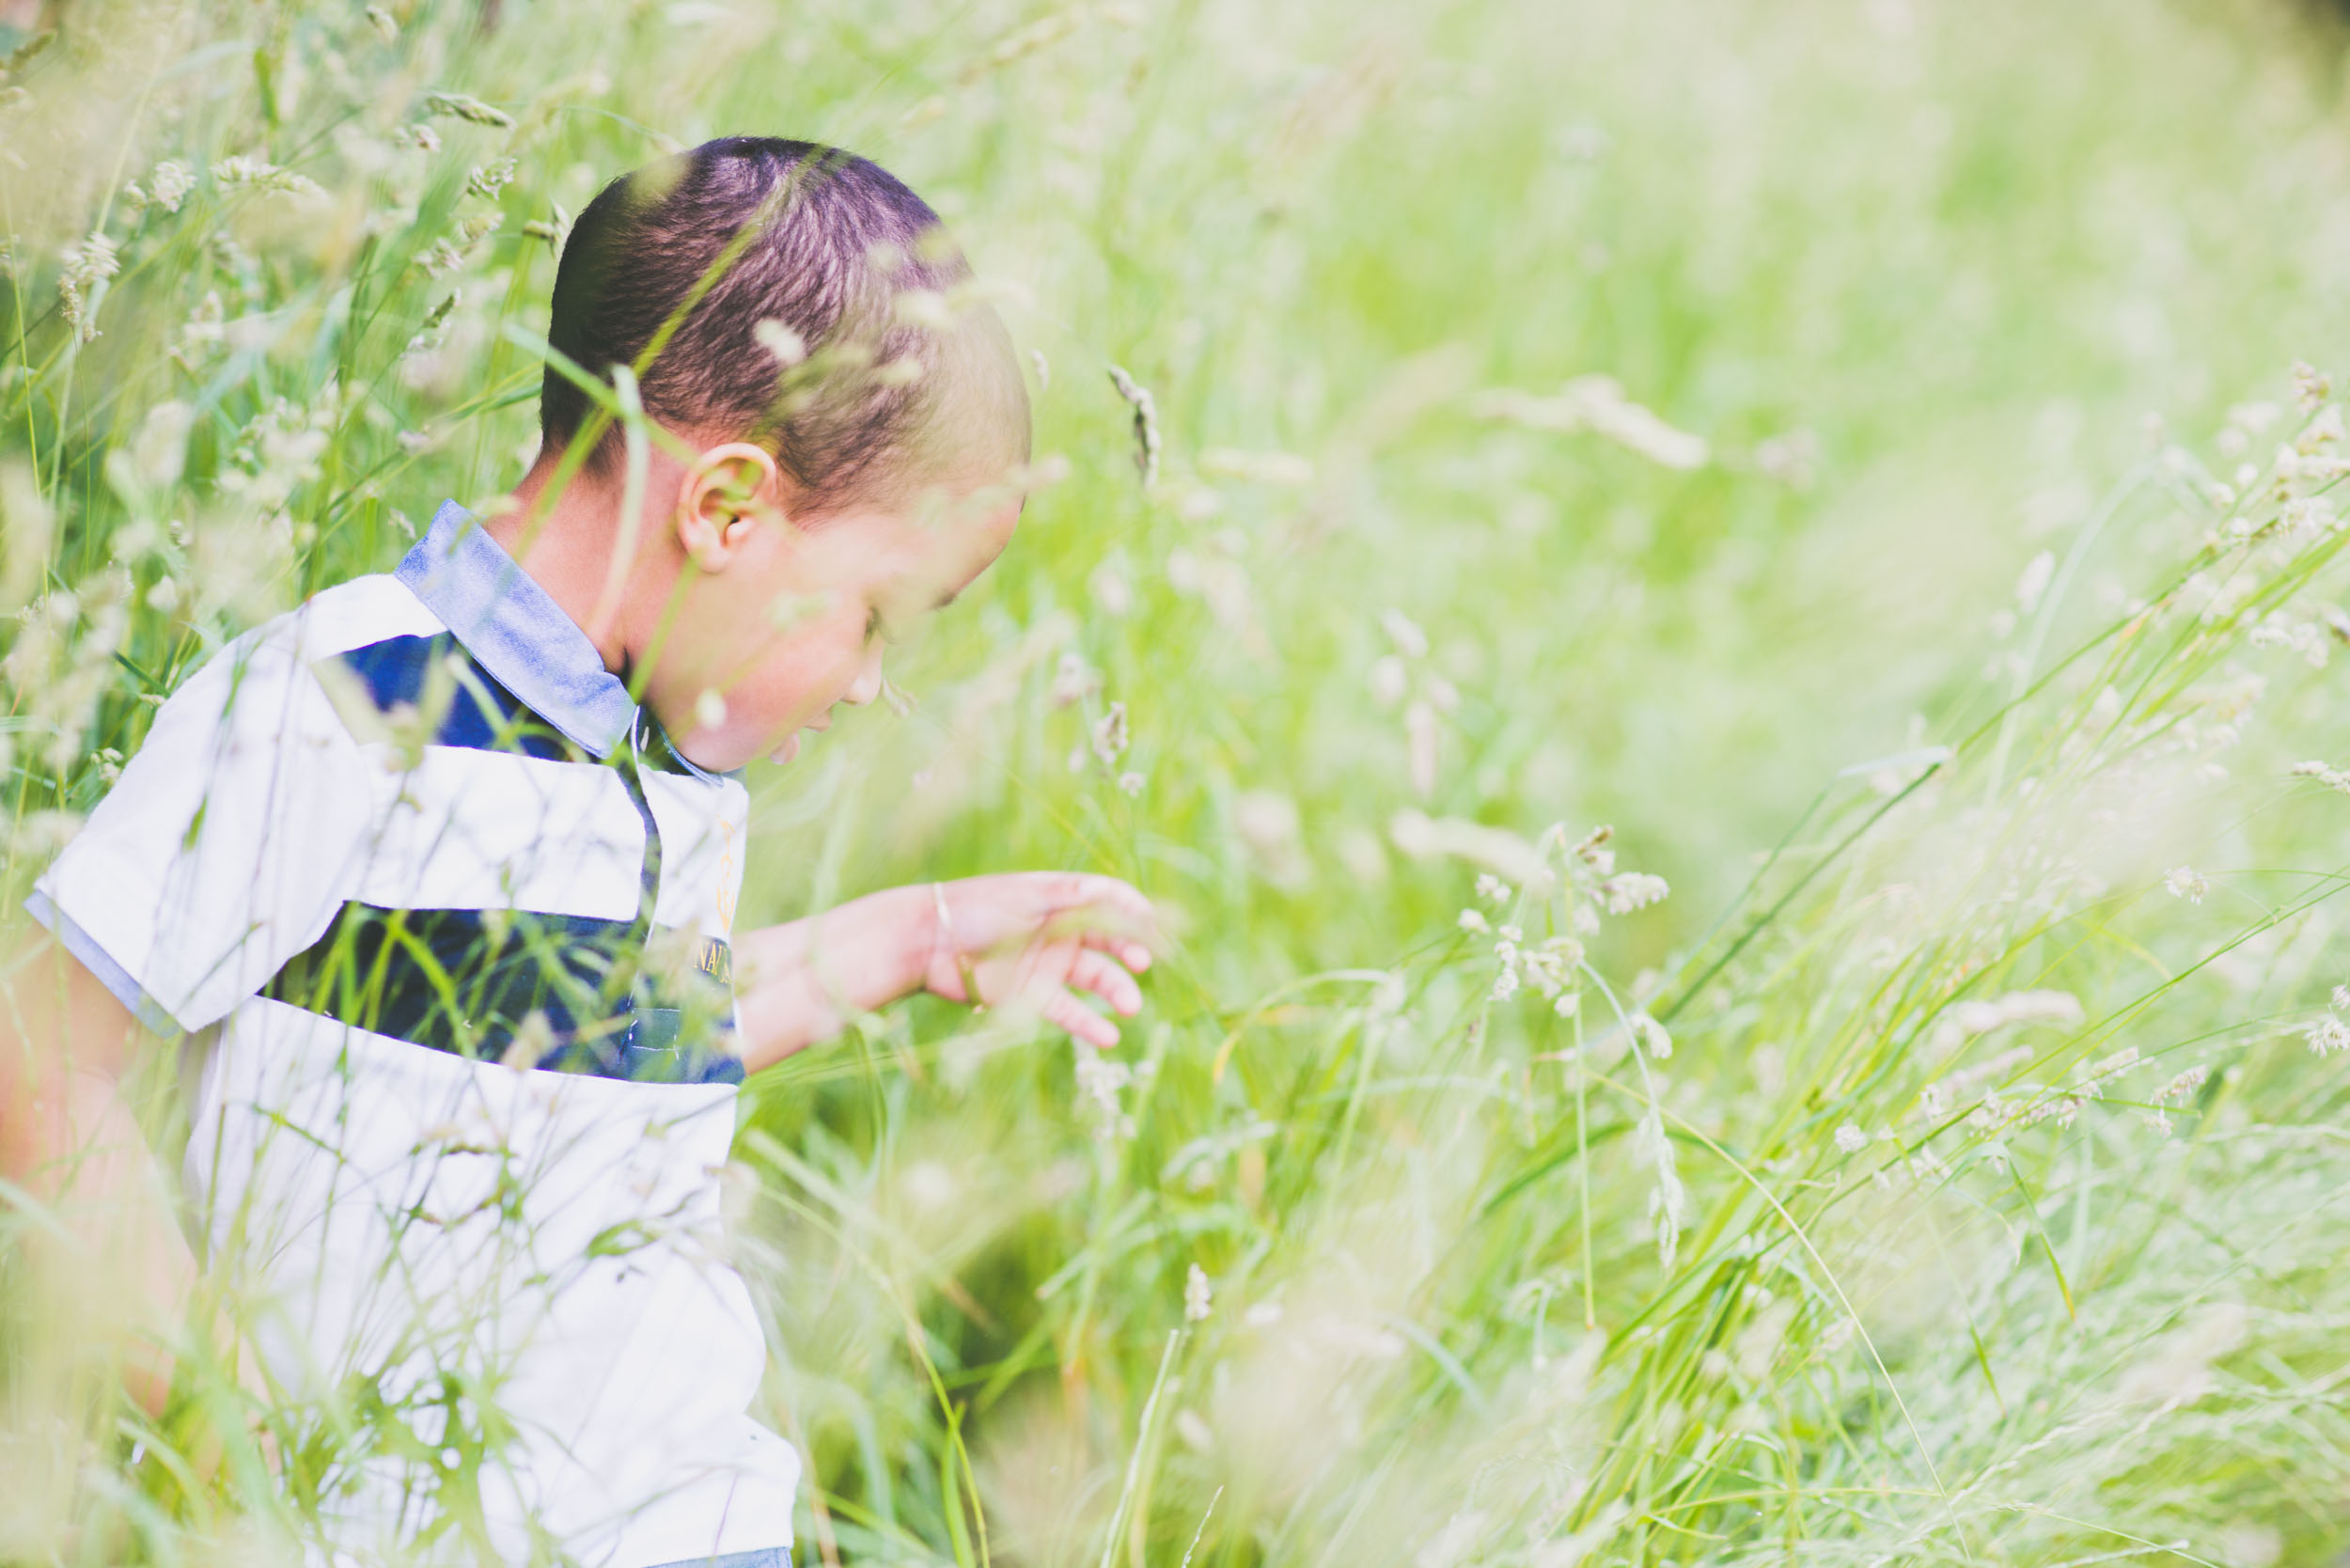 Boy in grass - Family - Photo credit Nicola Bailey.jpg